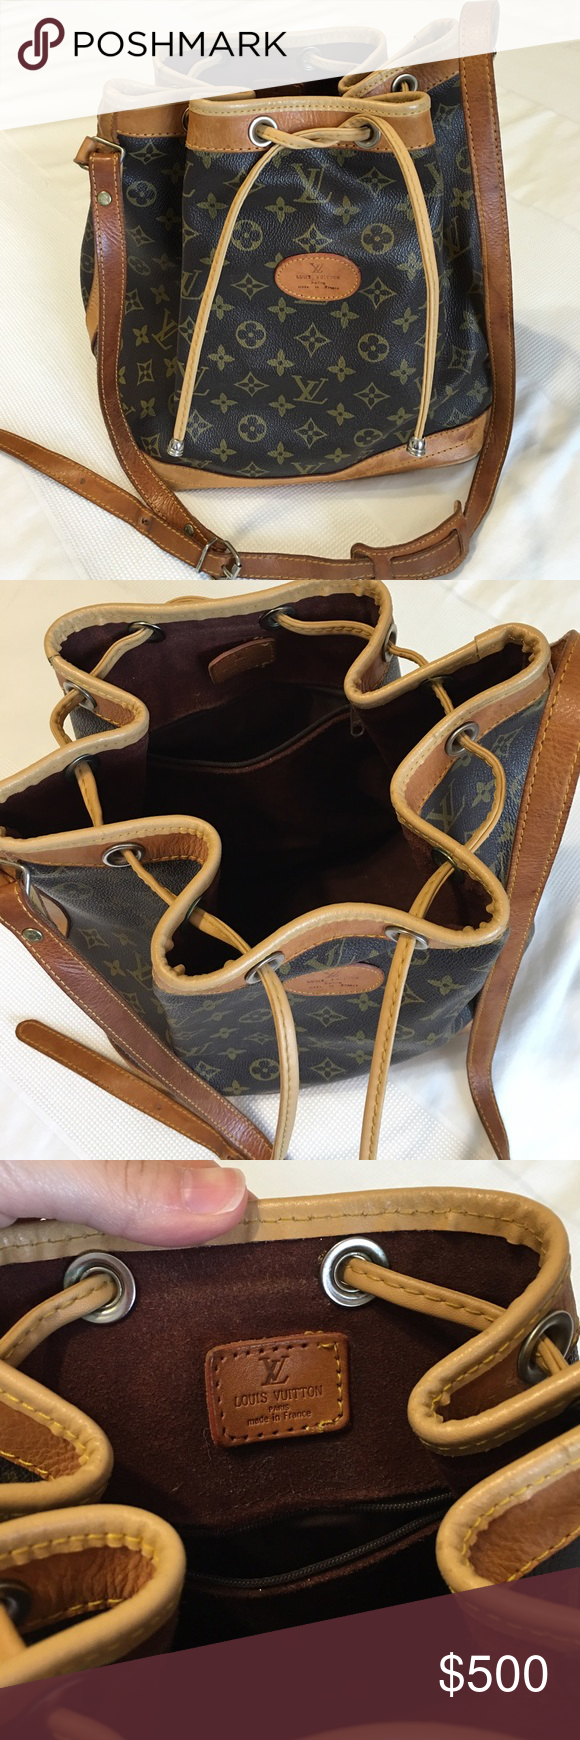 Vintage Louis Vuitton Drawstring Bucket Bag Not Sure If It S From